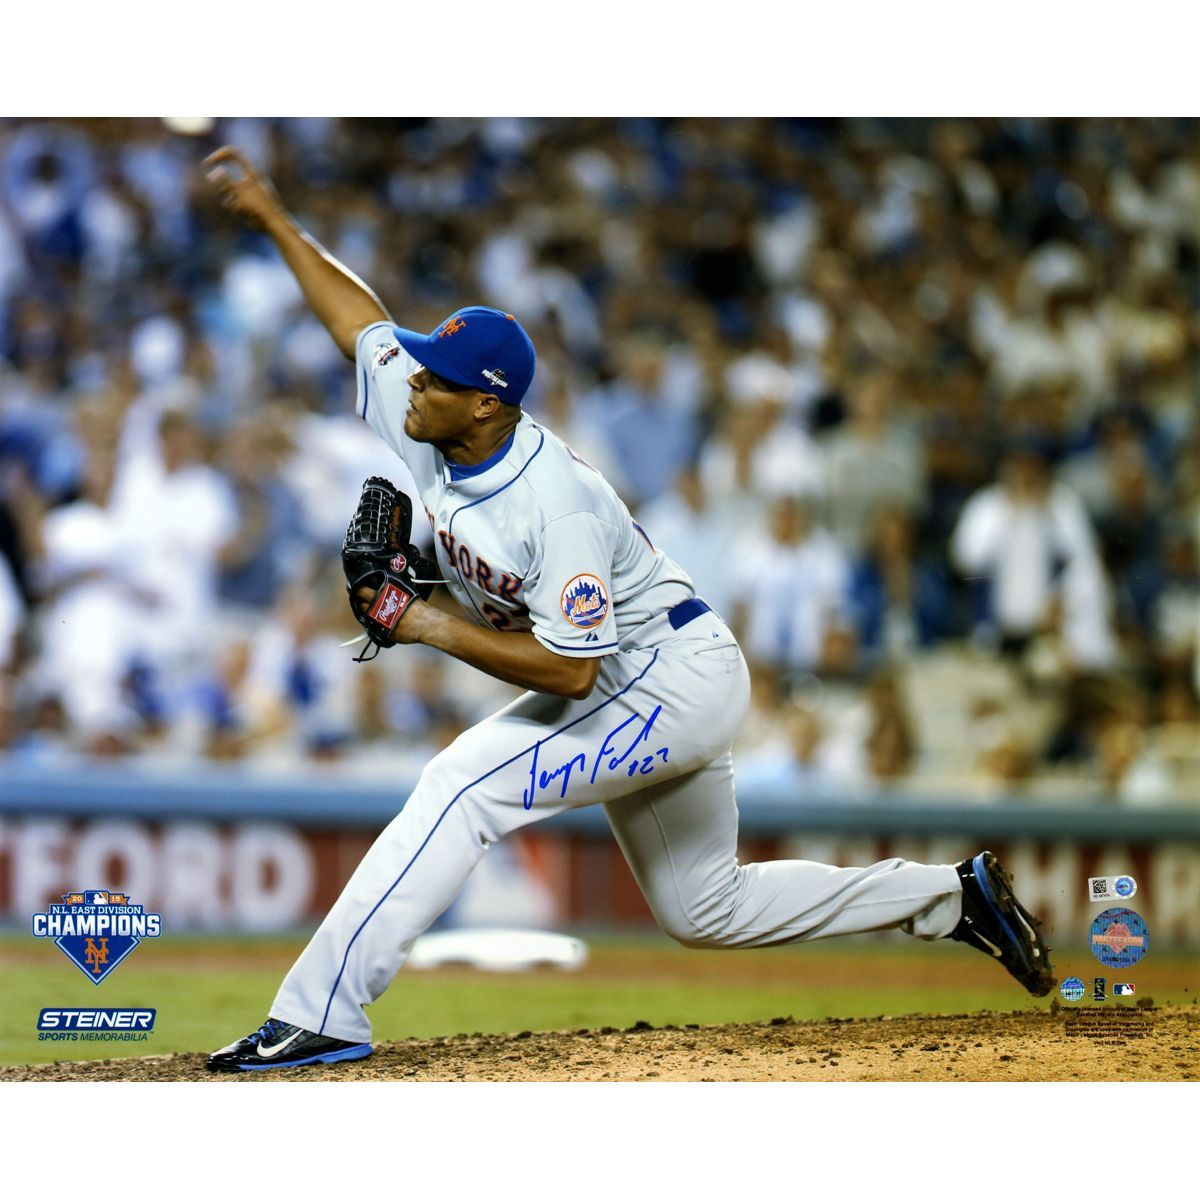 Steiner Jeurys Familia Signed Th Inning  Nlds Game  Pitching